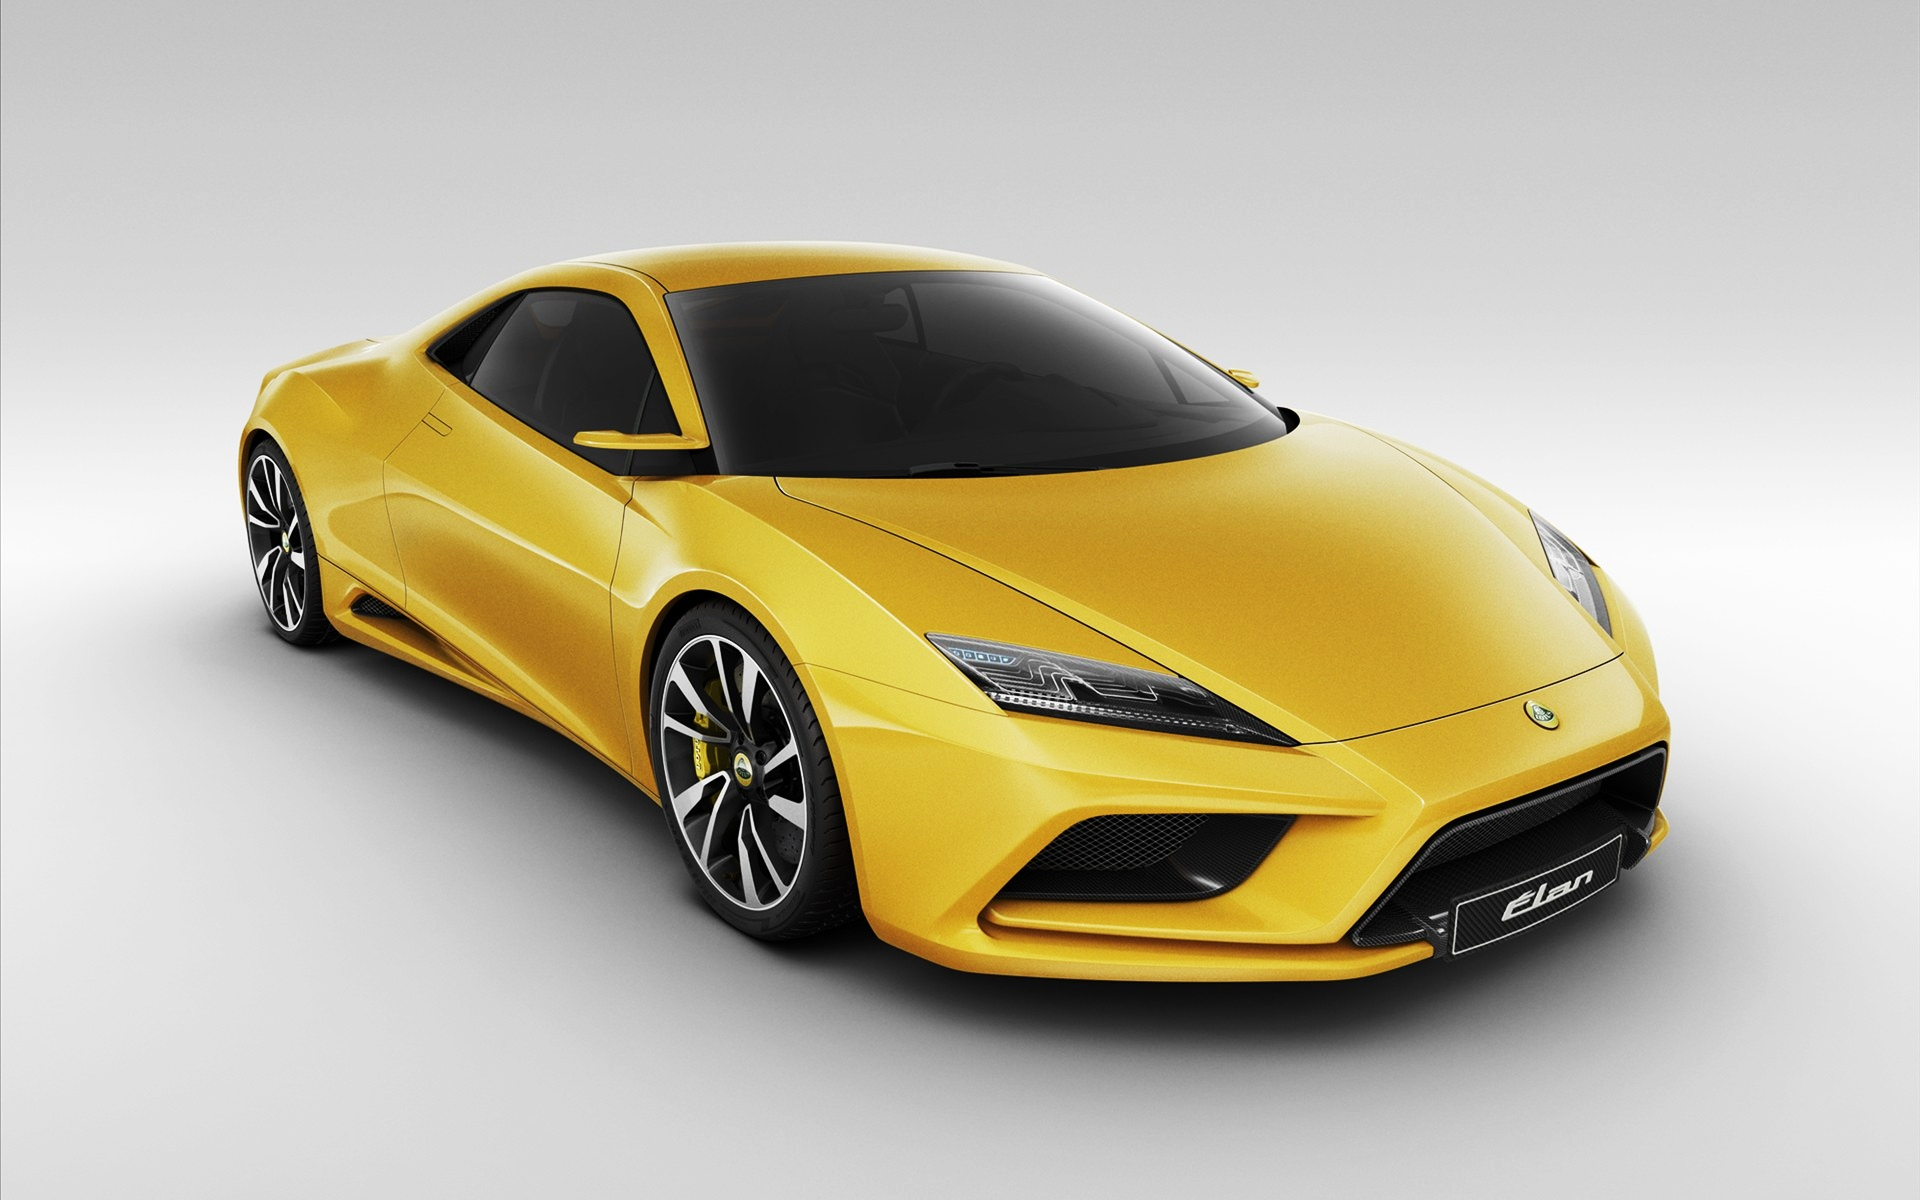 2010 Lotus Elan Concept Car